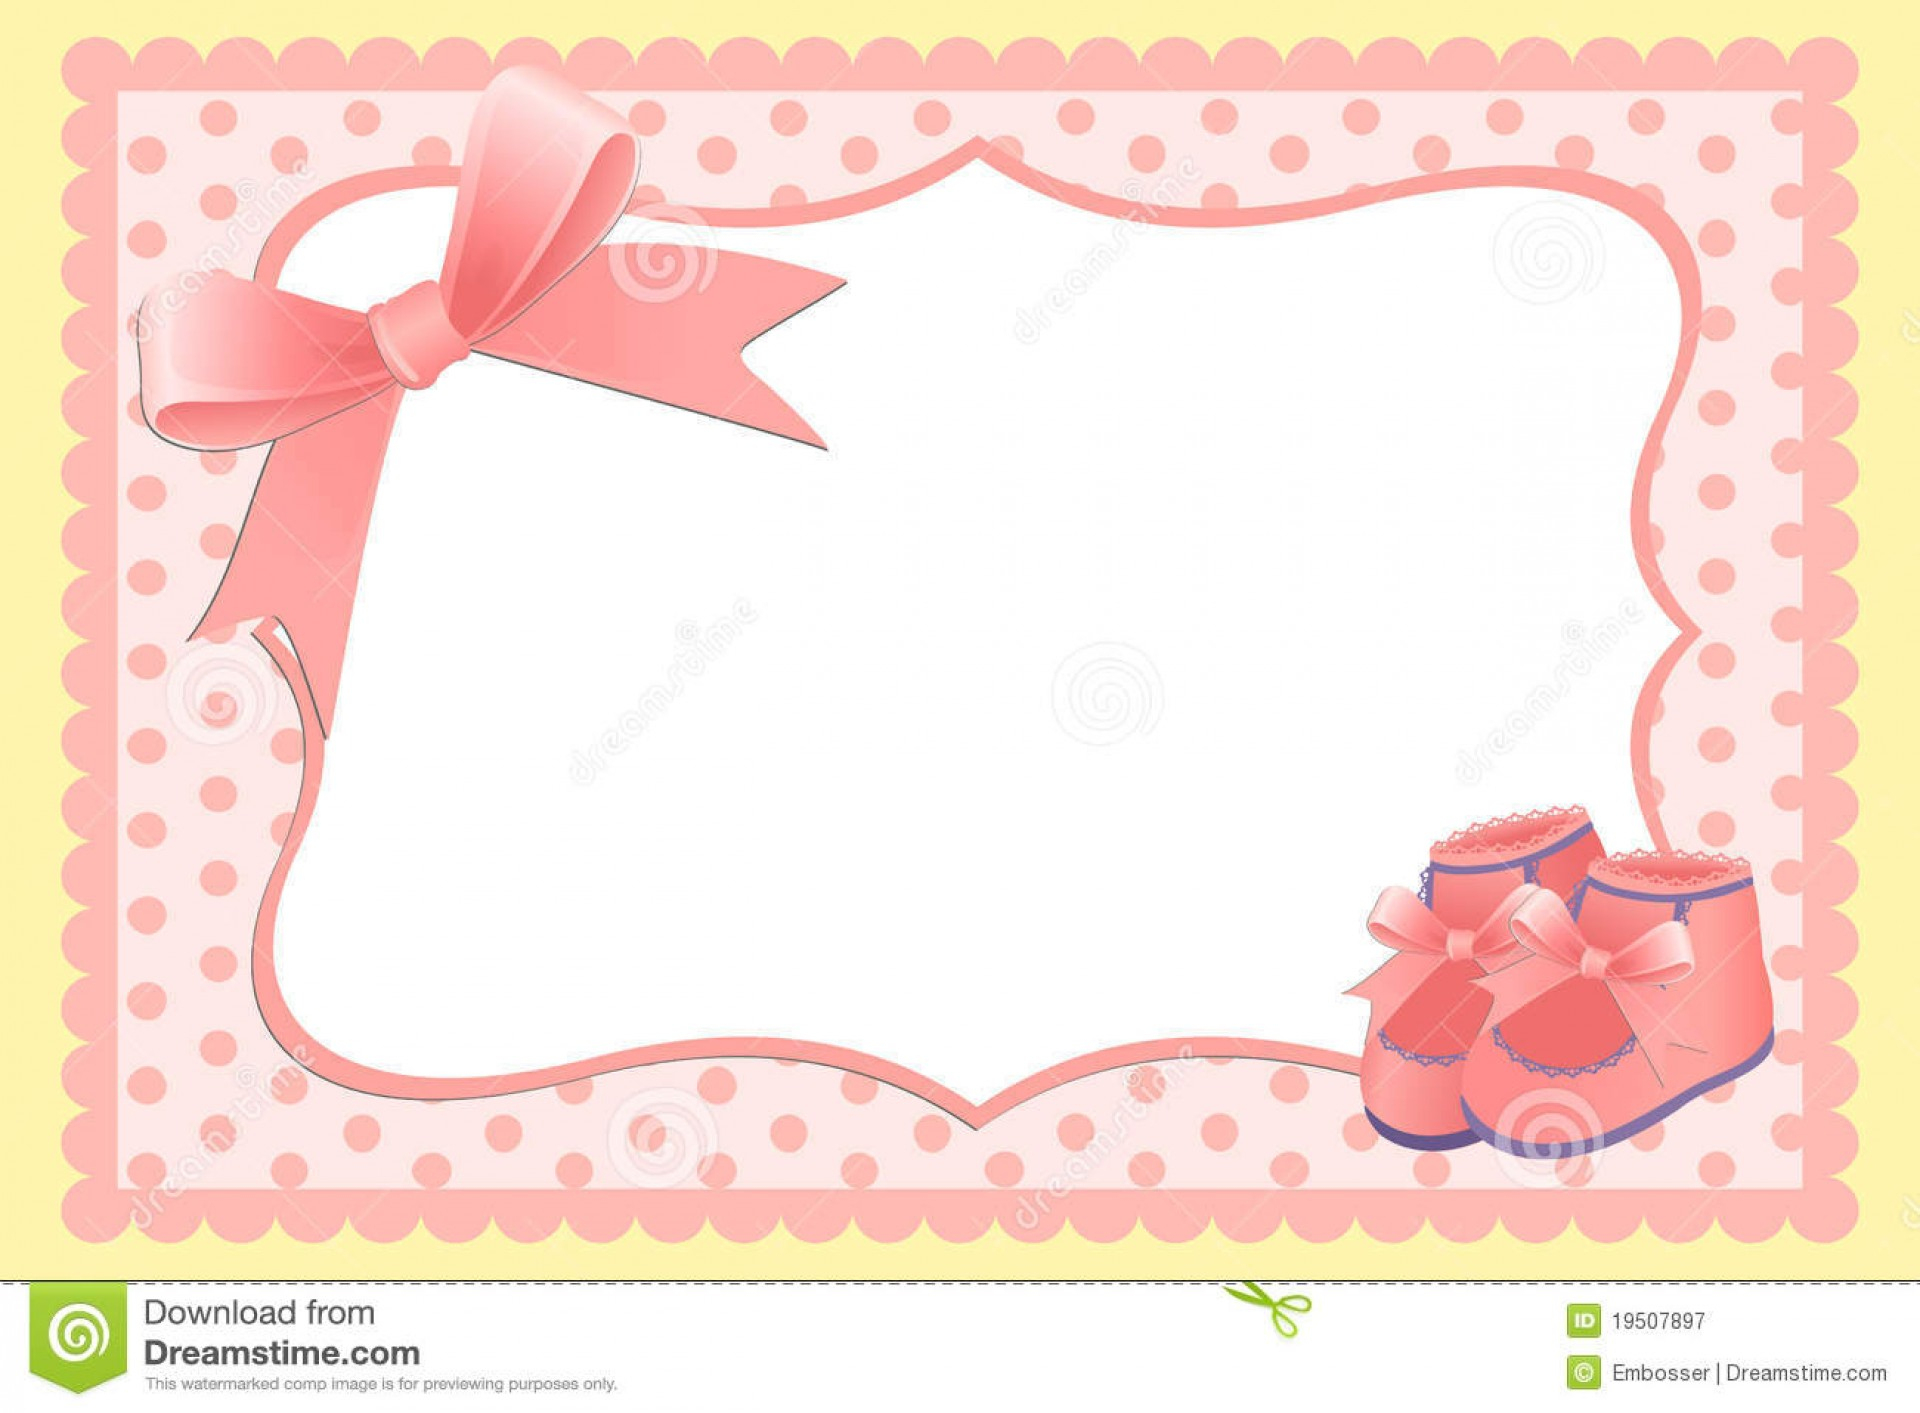 015 Free Birth Announcements Templates Template Ideas Elephant - Free Birth Announcements Printable